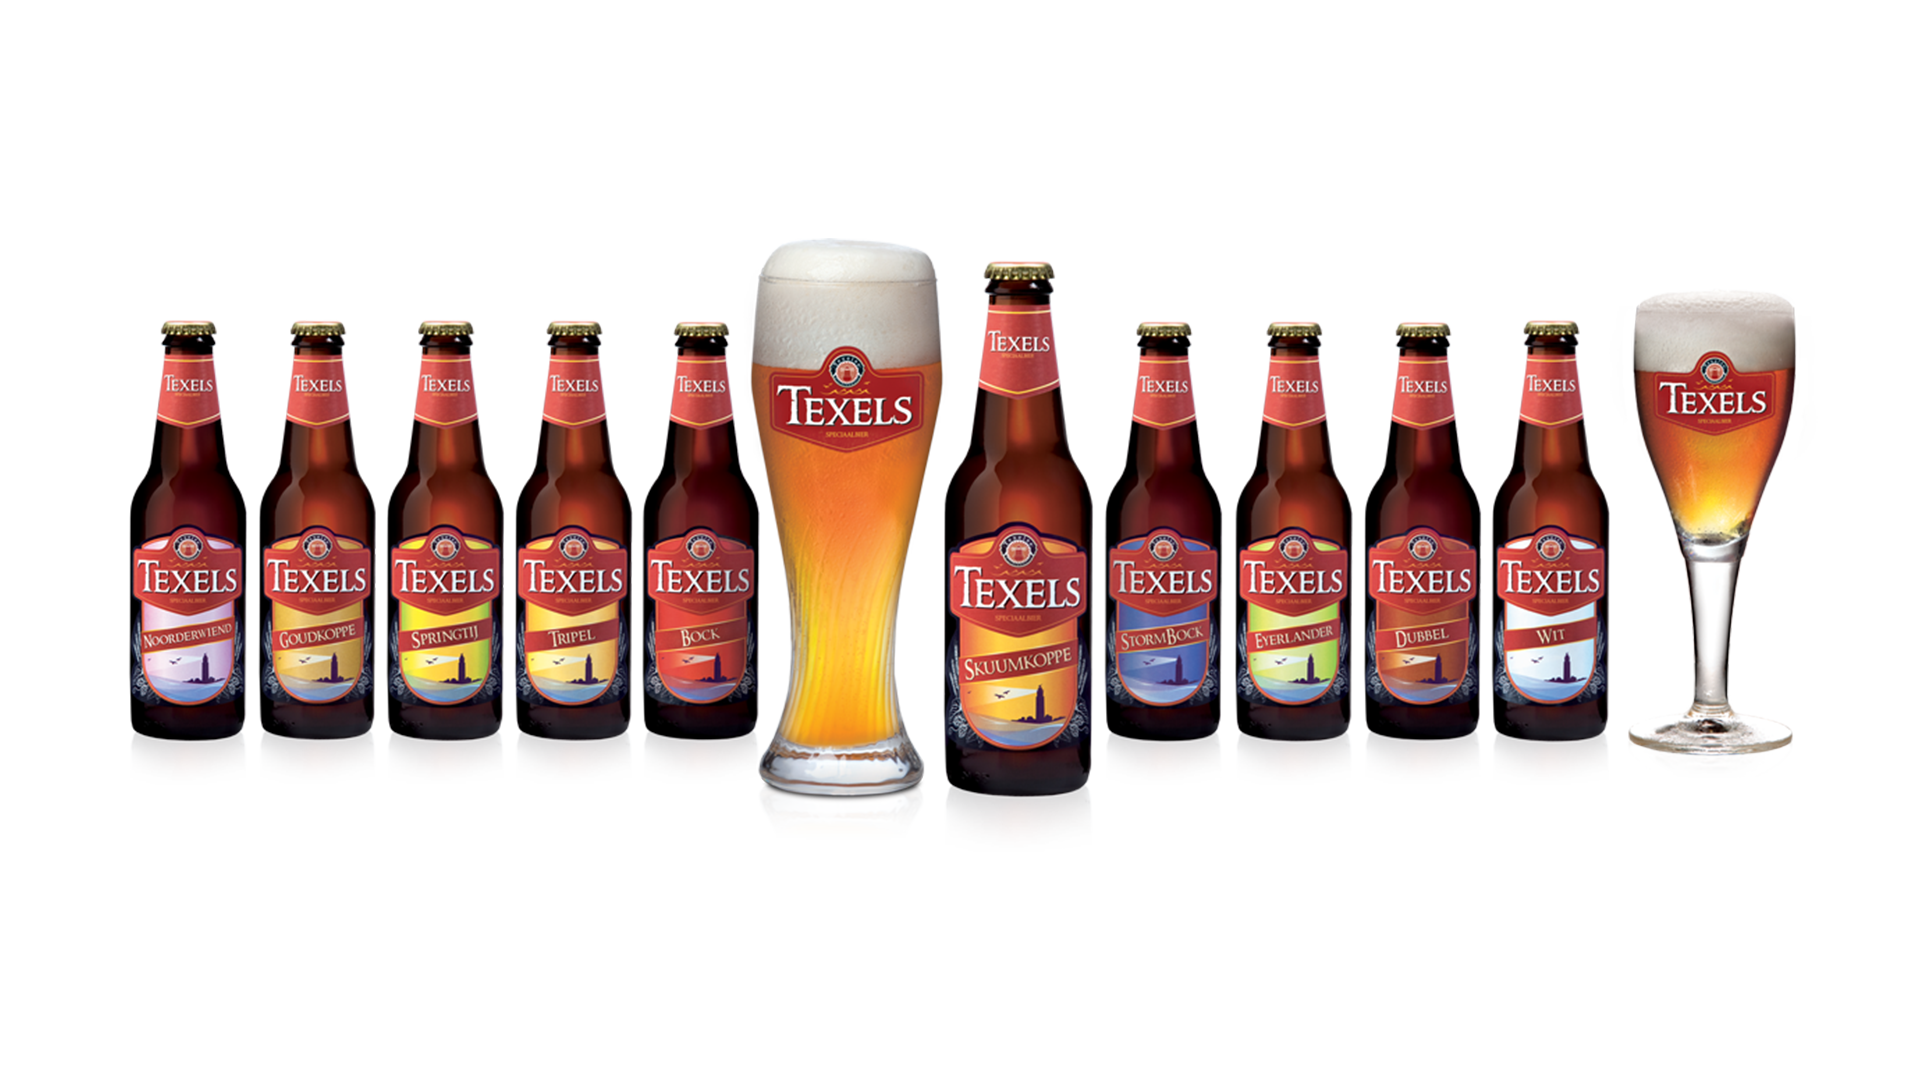 flesjes packaging Texelse bierbrouwerij